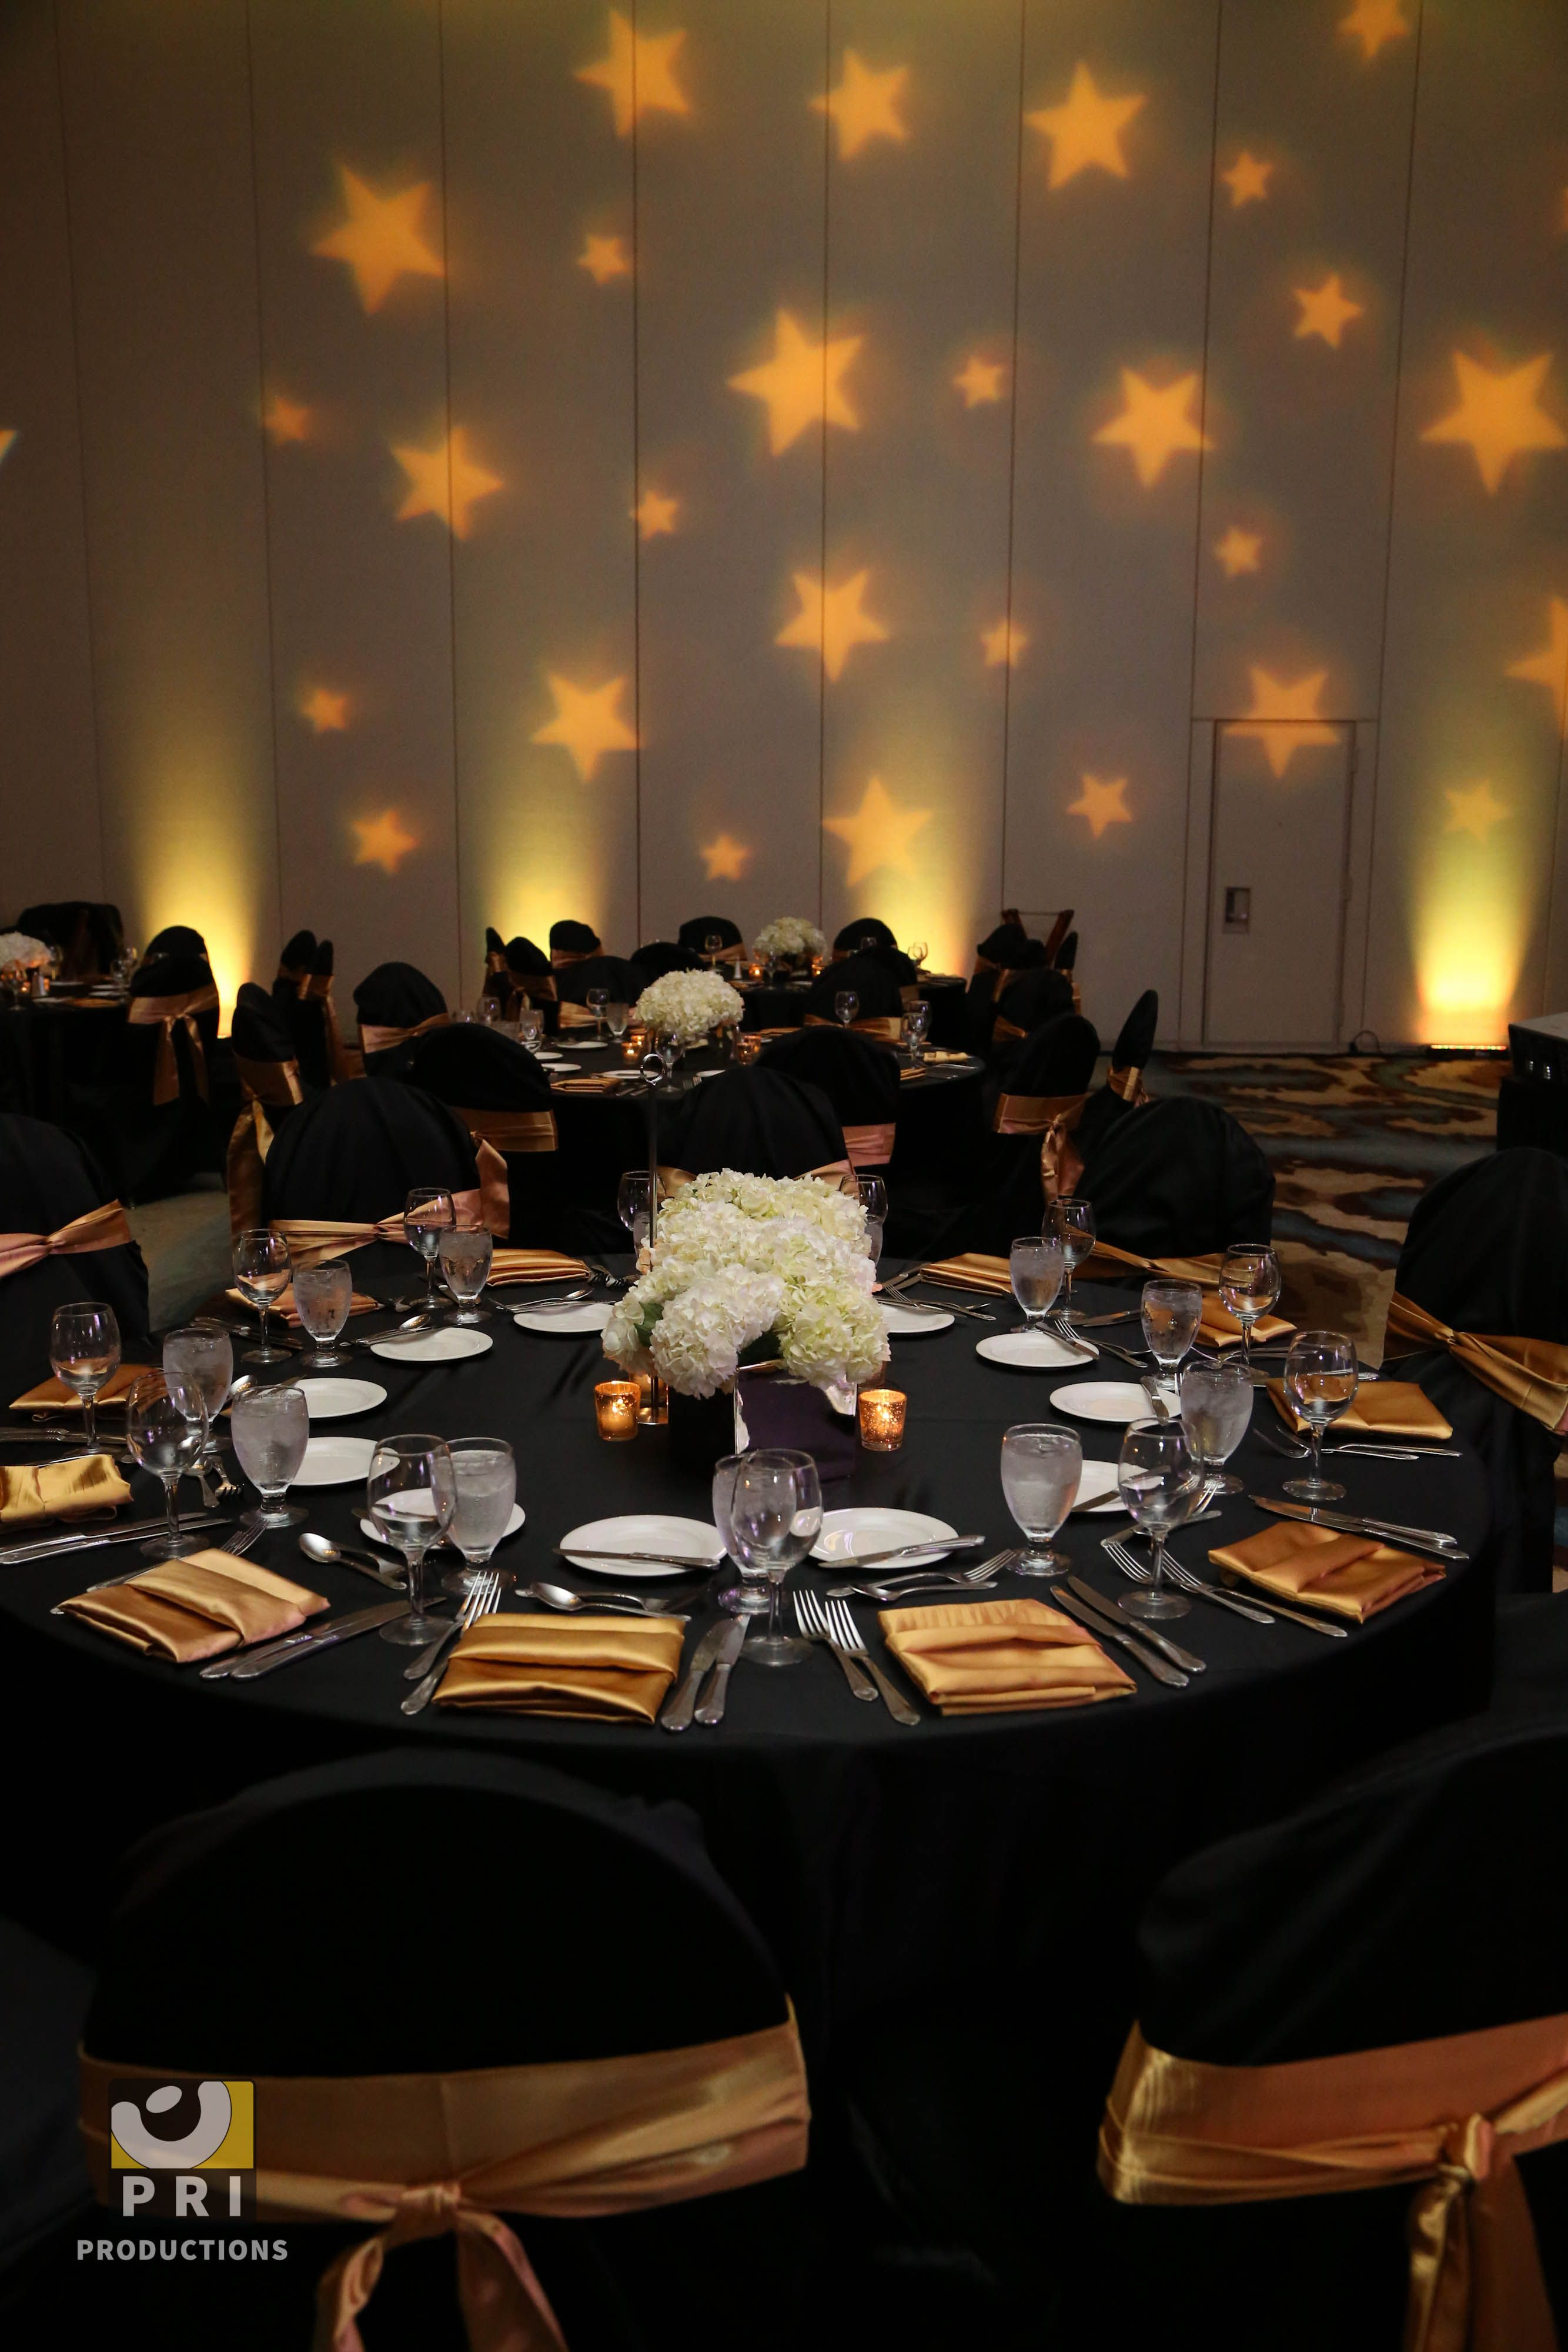 Custom star gobo lighting projected on a wall during an for Award decoration